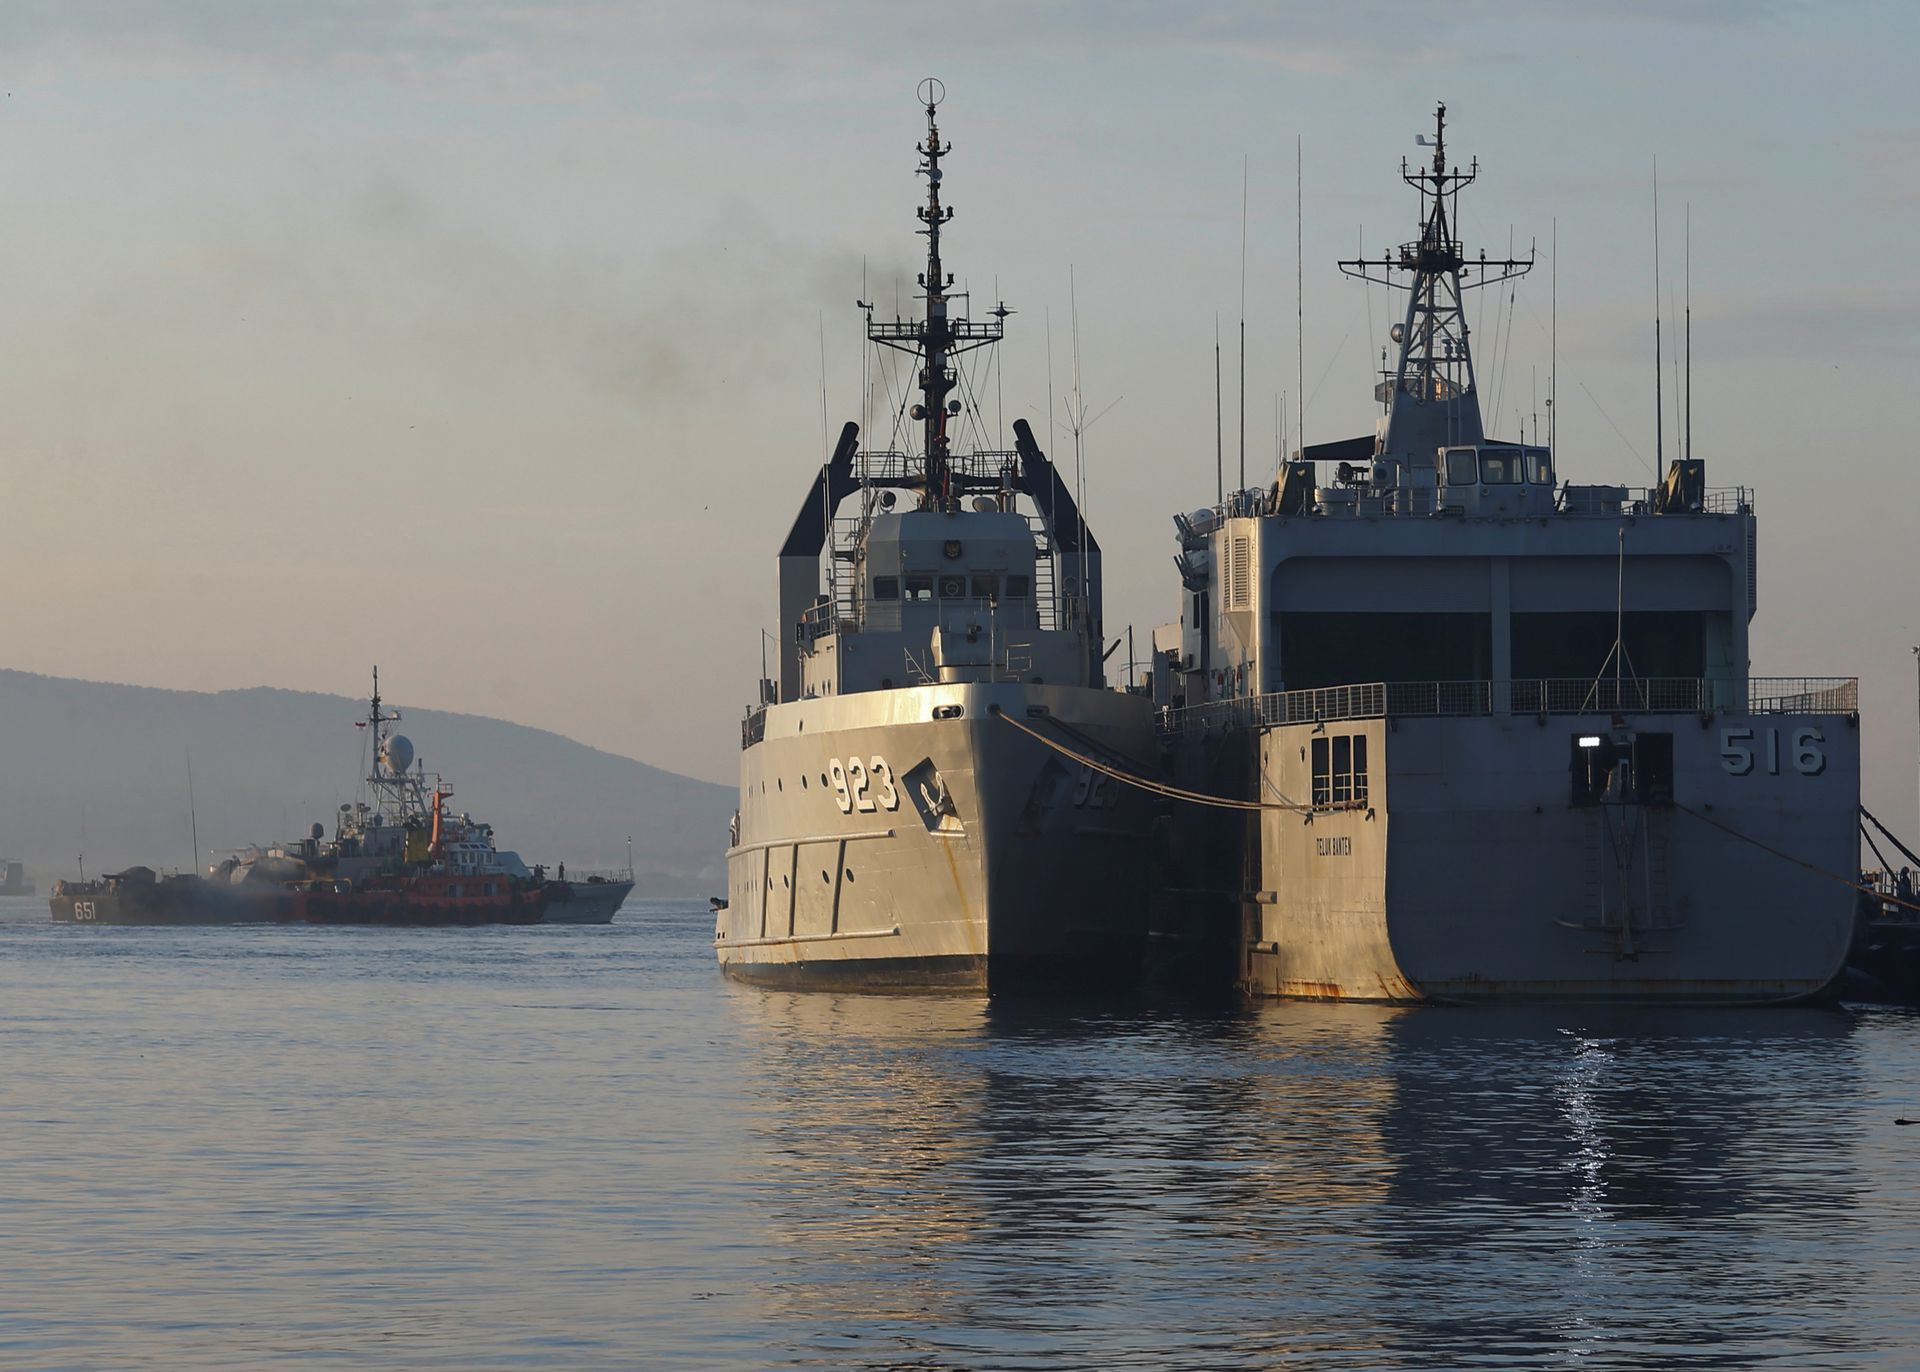 Indonesian Navy's ships are seen at the Tanjung Wangi port as the search continues for the missing KRI Nanggala-402 submarine in Banyuwangi, East Java Province Indonesia, April 25, 2021. Photo: Reuters